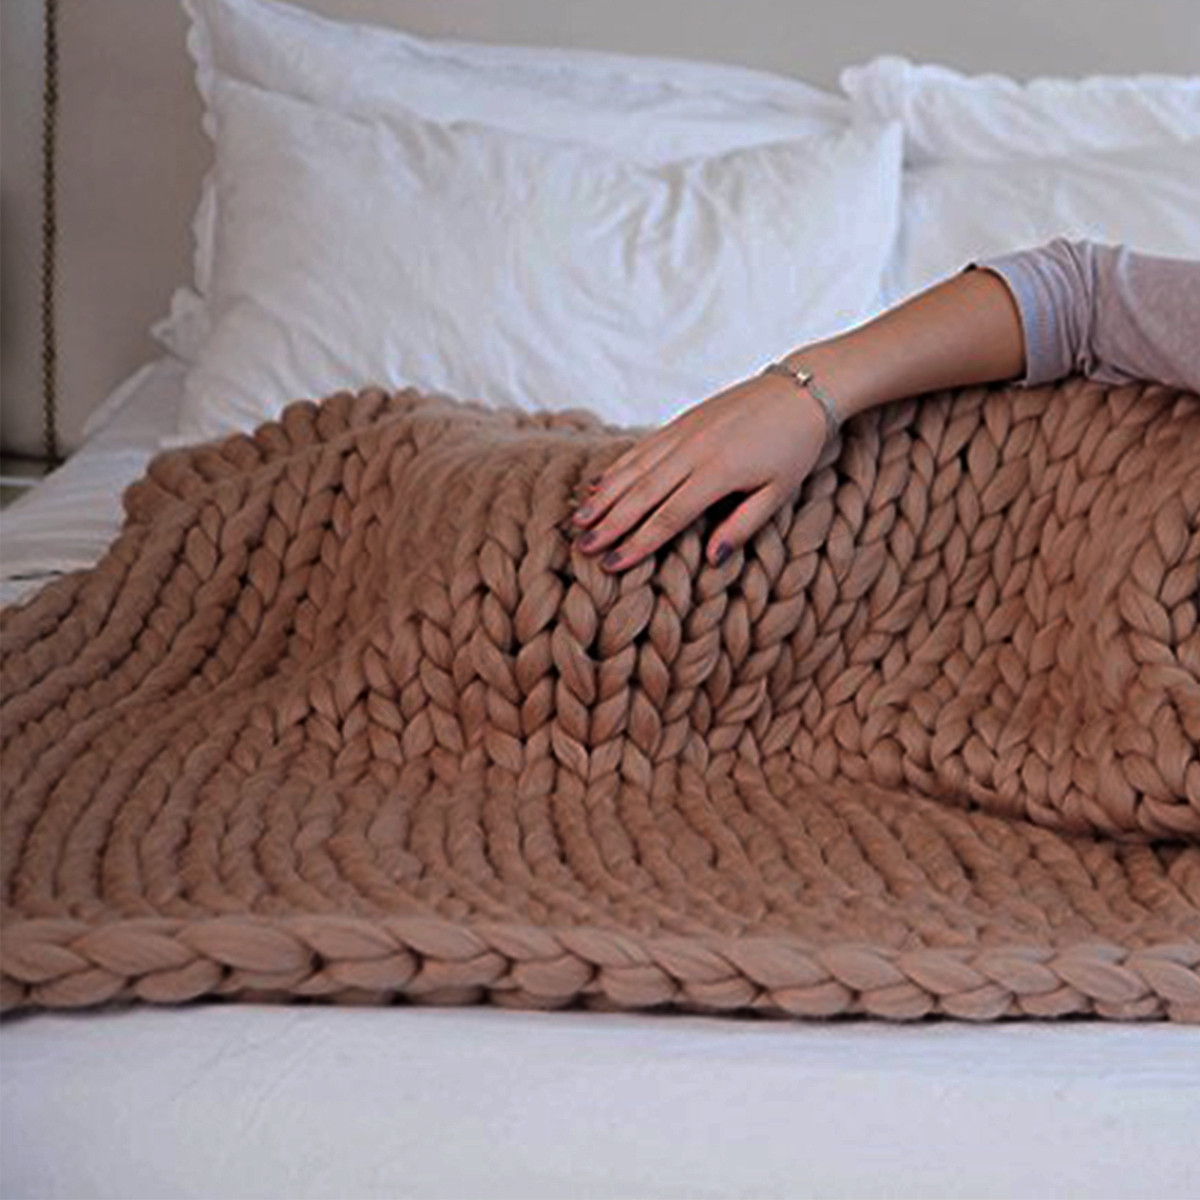 Thick Yarn Blanket Inspirational Handmade Chunky Knitted Blanket Wool Thick Line Yarn Of Perfect 41 Images Thick Yarn Blanket